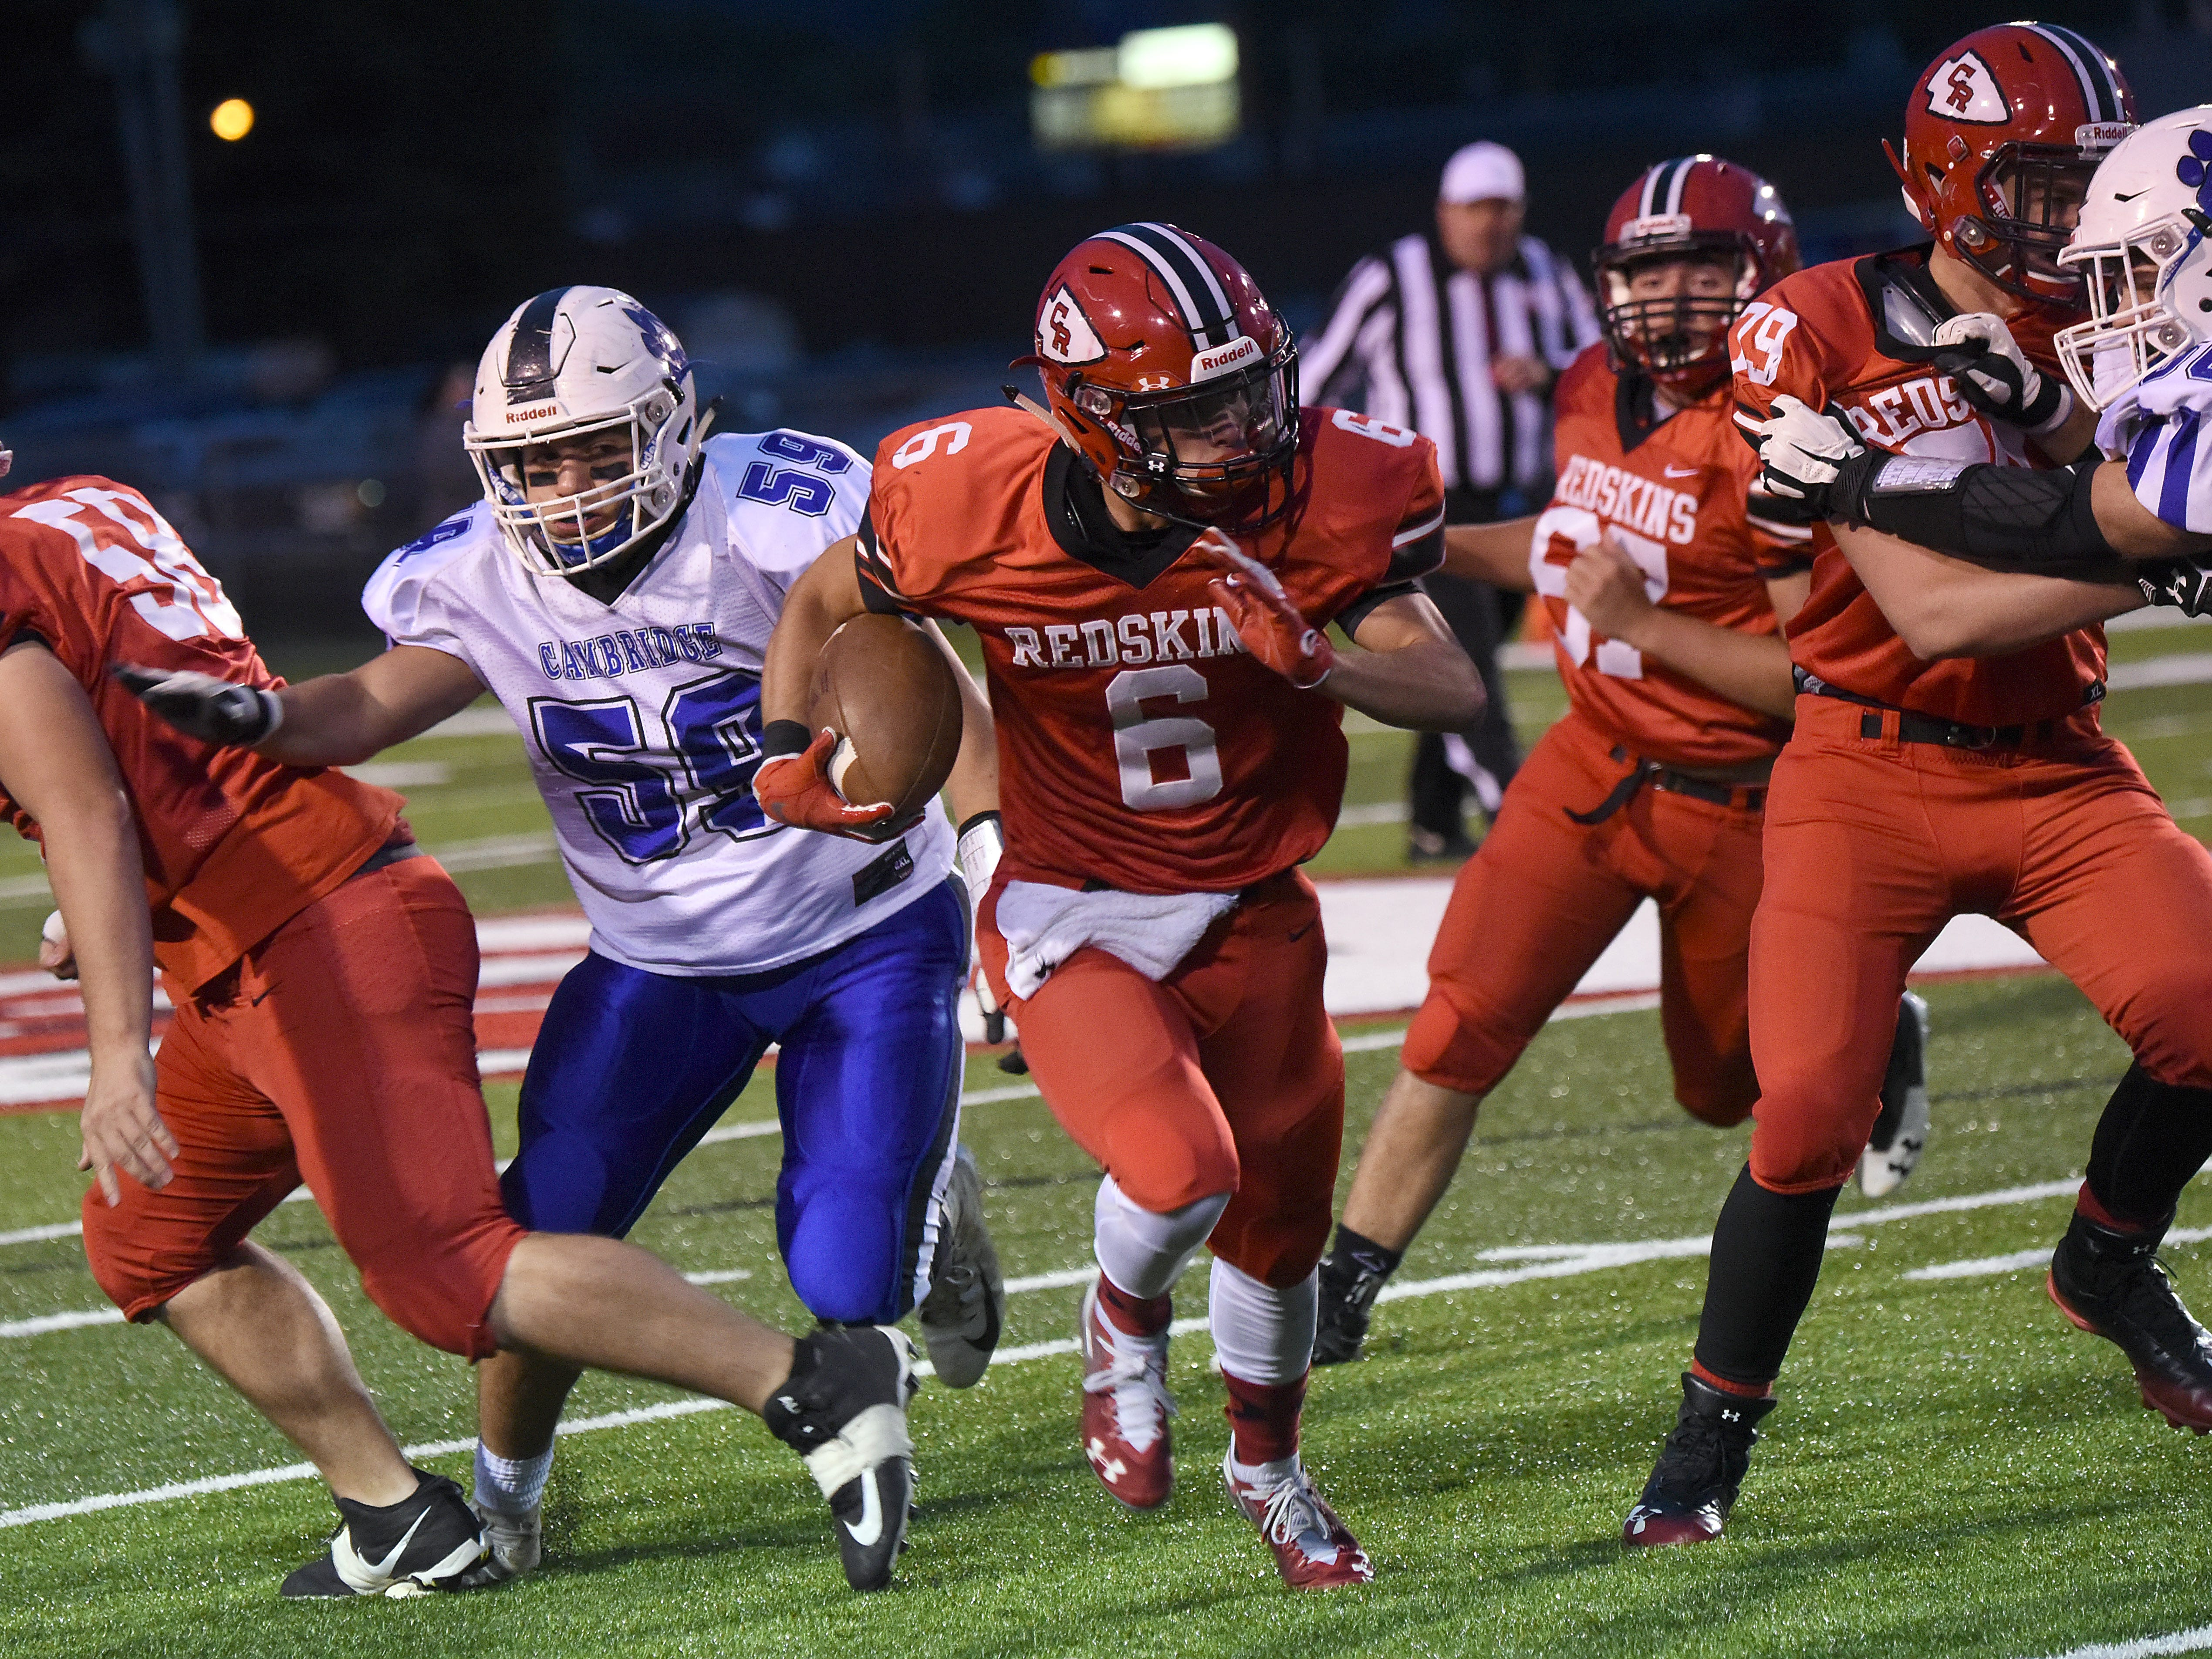 Coshocton senior Andrew Kittelll finds an opening in the Cambridge defense during their homecoming game on Friday, Oct. 12, 2018. Coshocton lost 33-22.